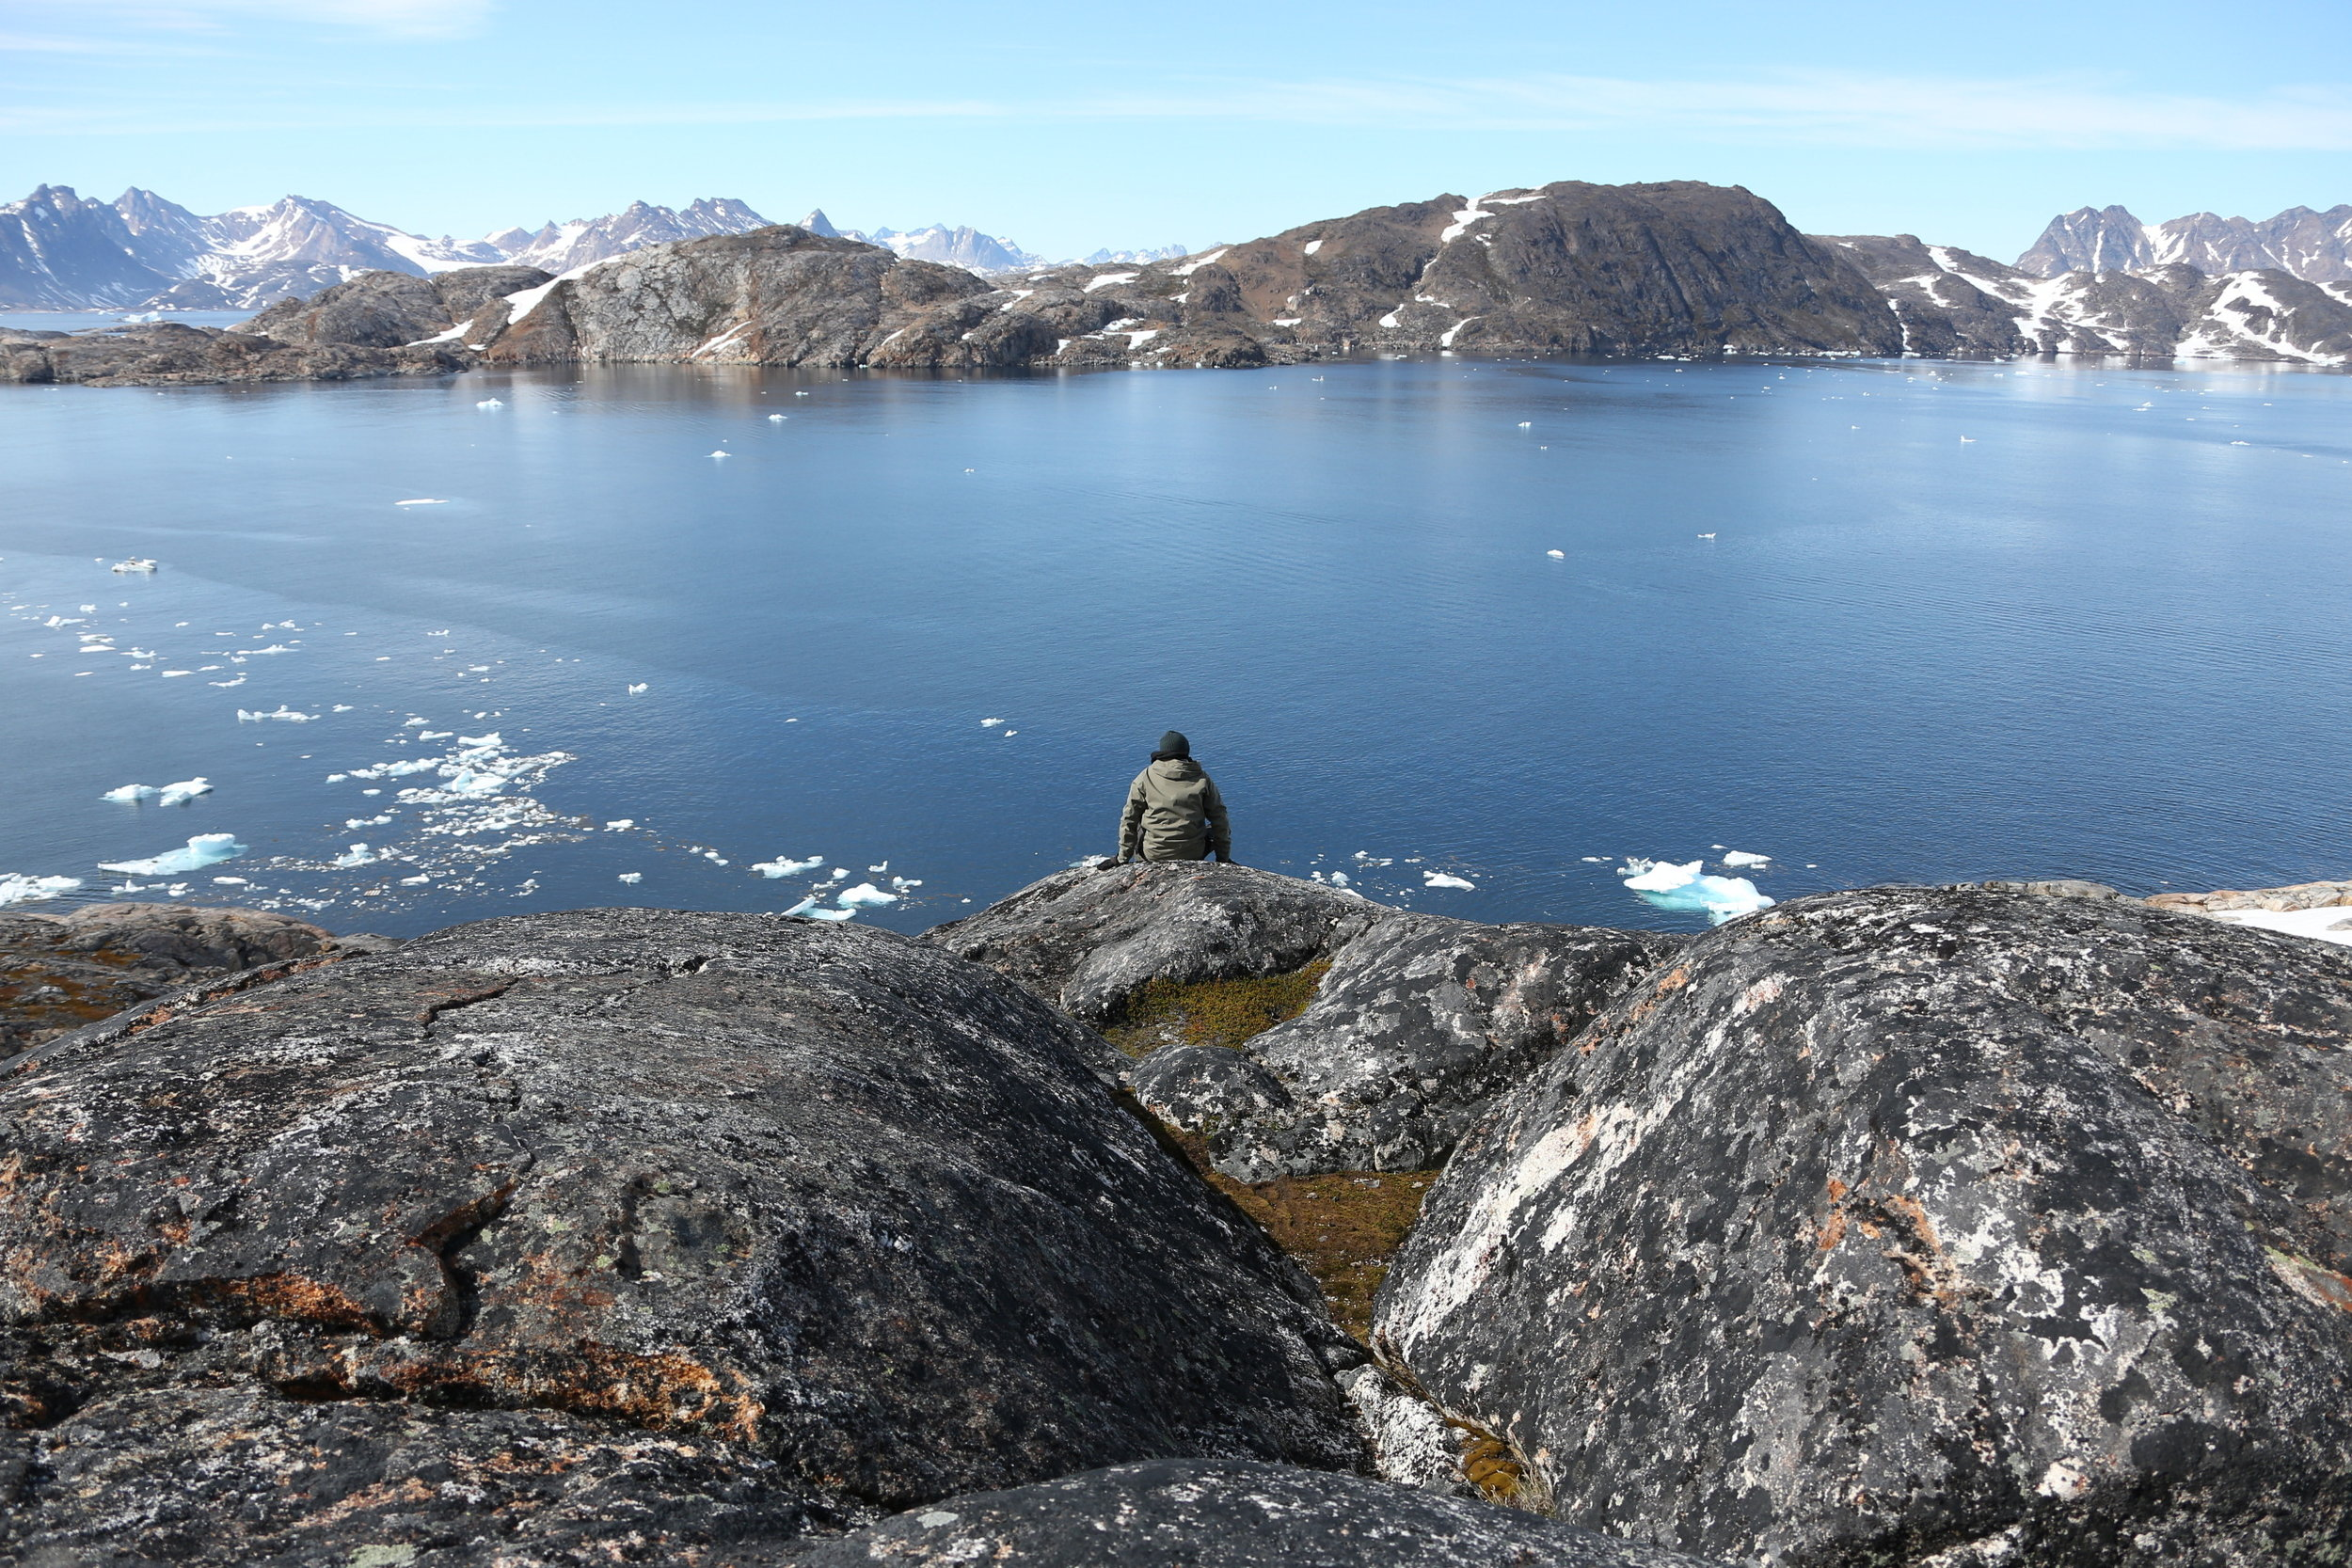 Sitting on the rocks overlooking the water from Kulusuk Island, Greenland.